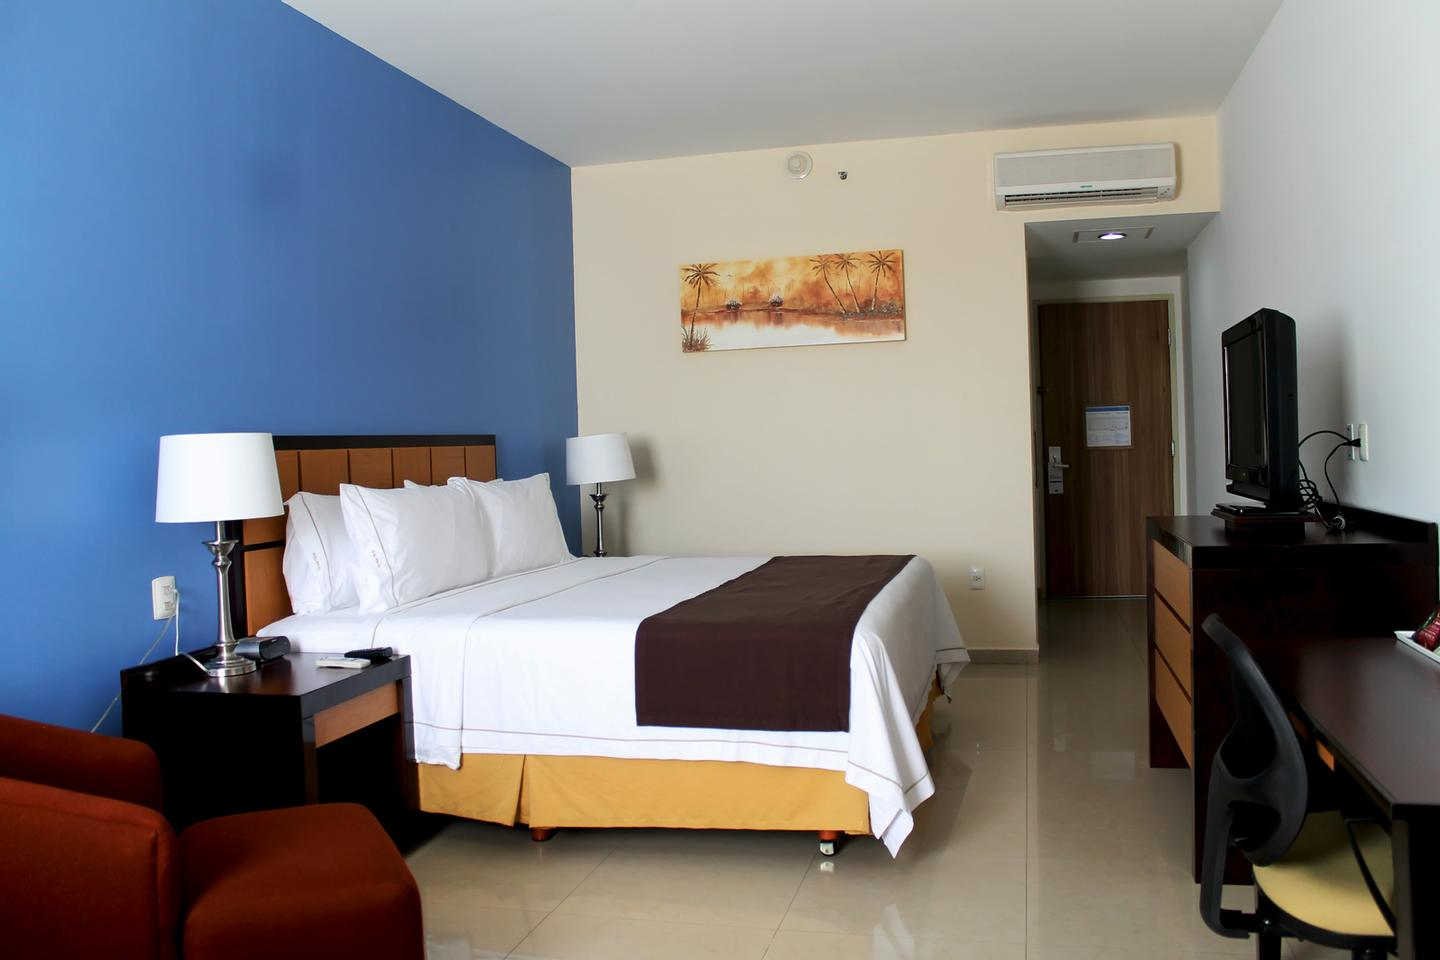 Holiday Inn Express Paraiso Dos Bocas 1 of 11